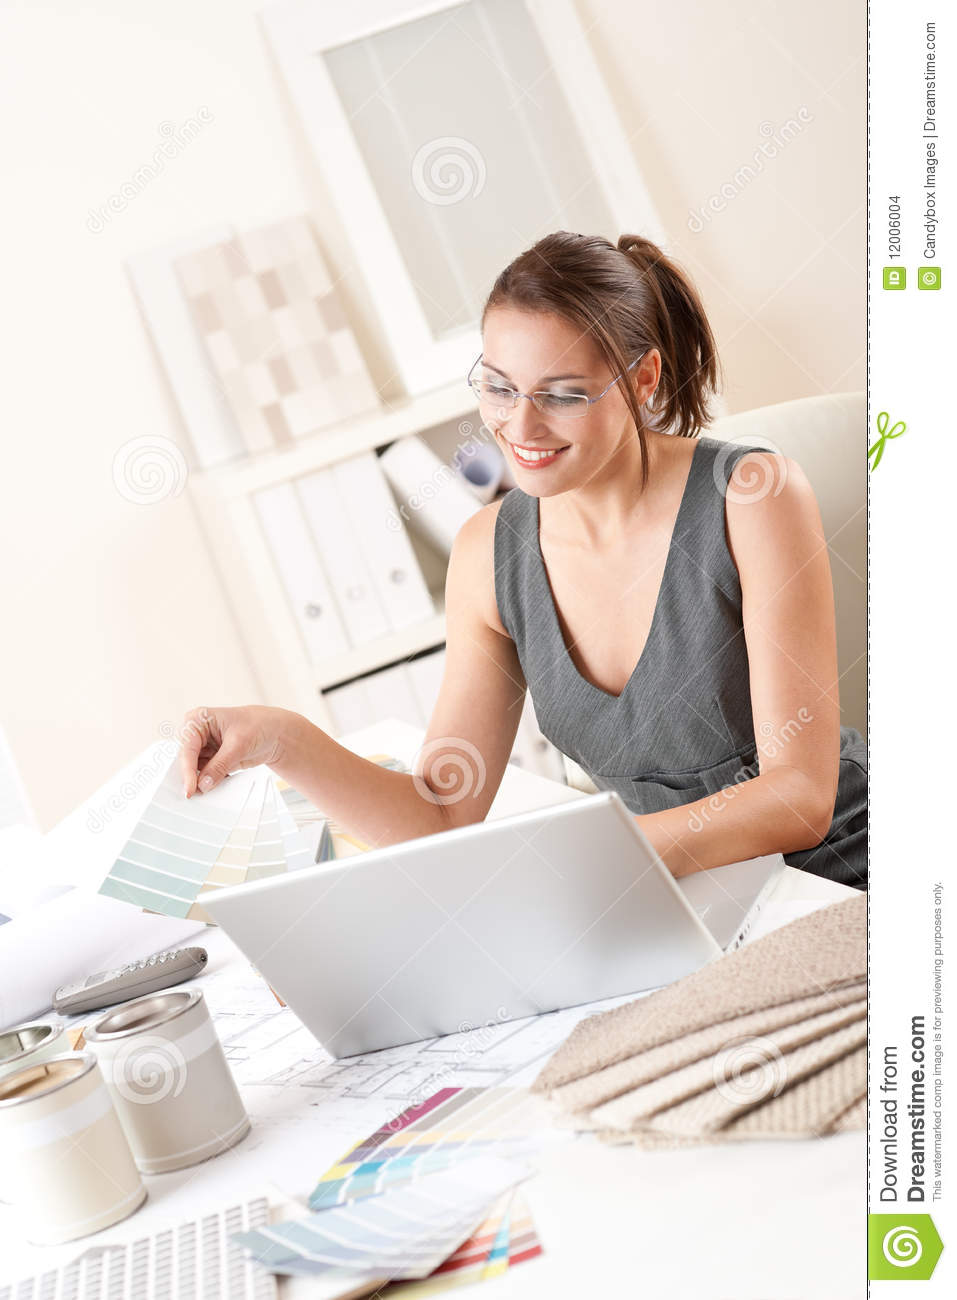 Female Interior Designer Holding Color Swatches Stock